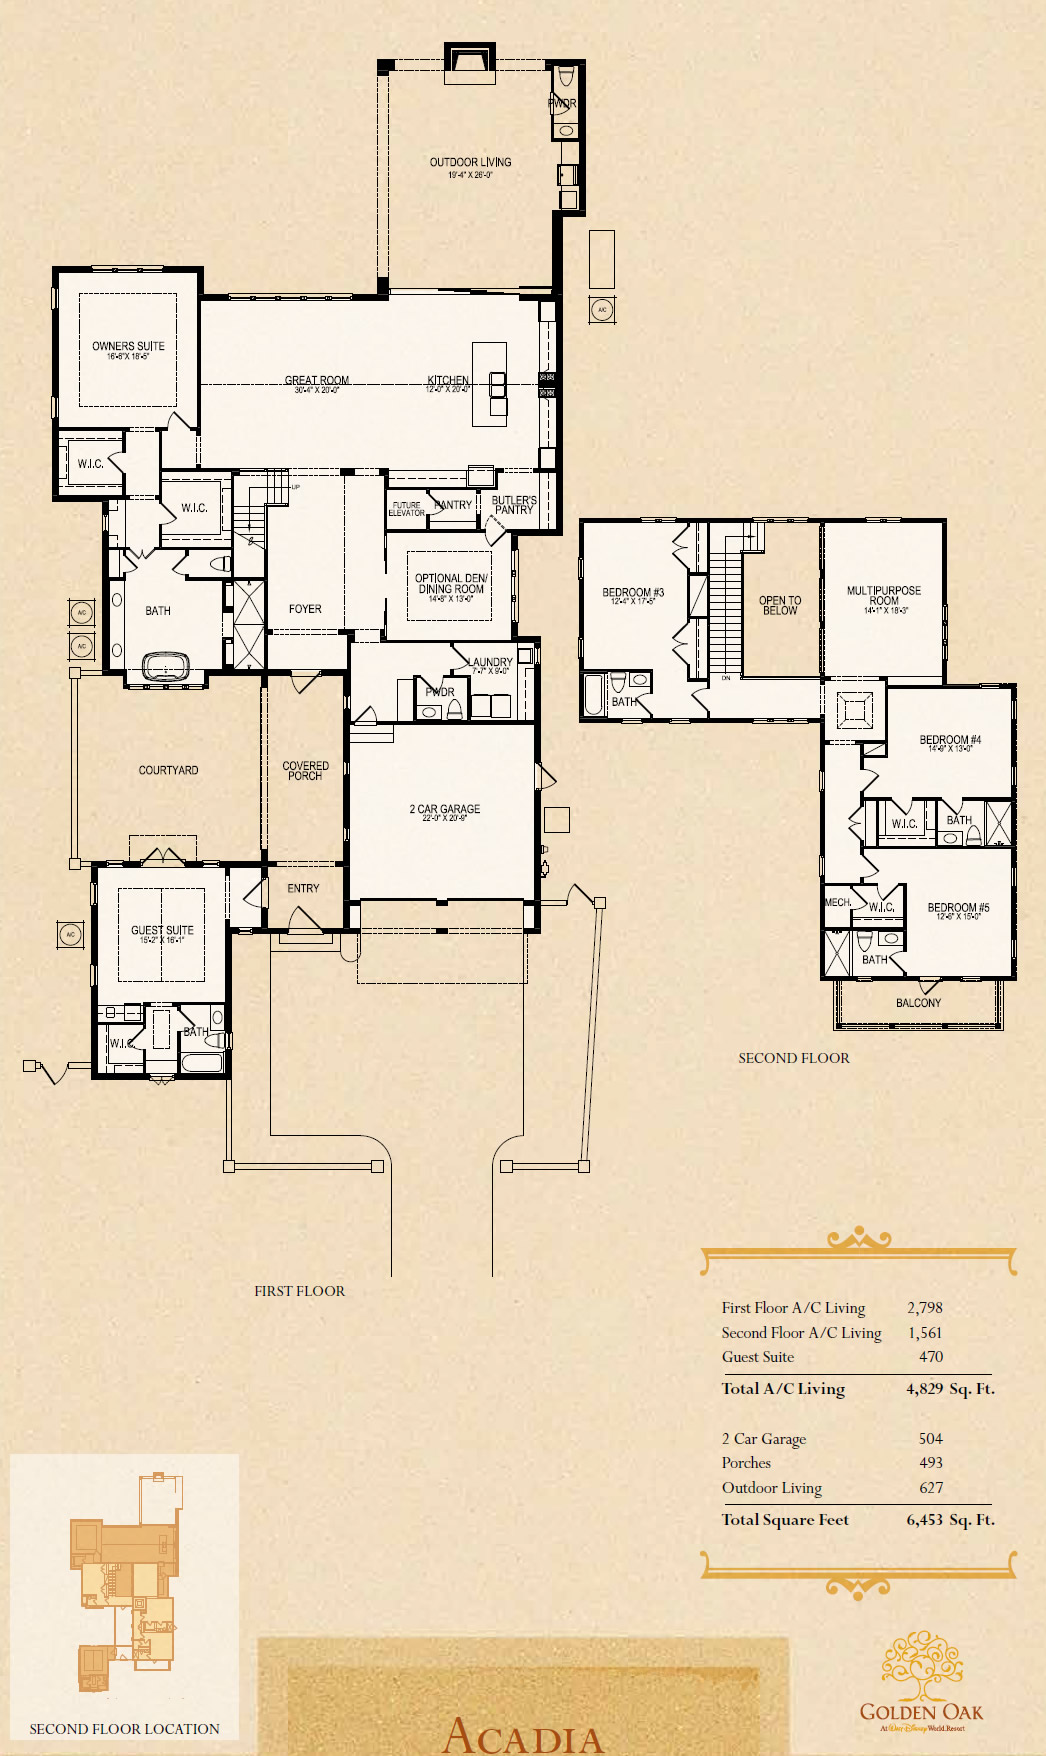 Disney golden oak luxury new homes in lake buena vistanew for Gt issa floor plans